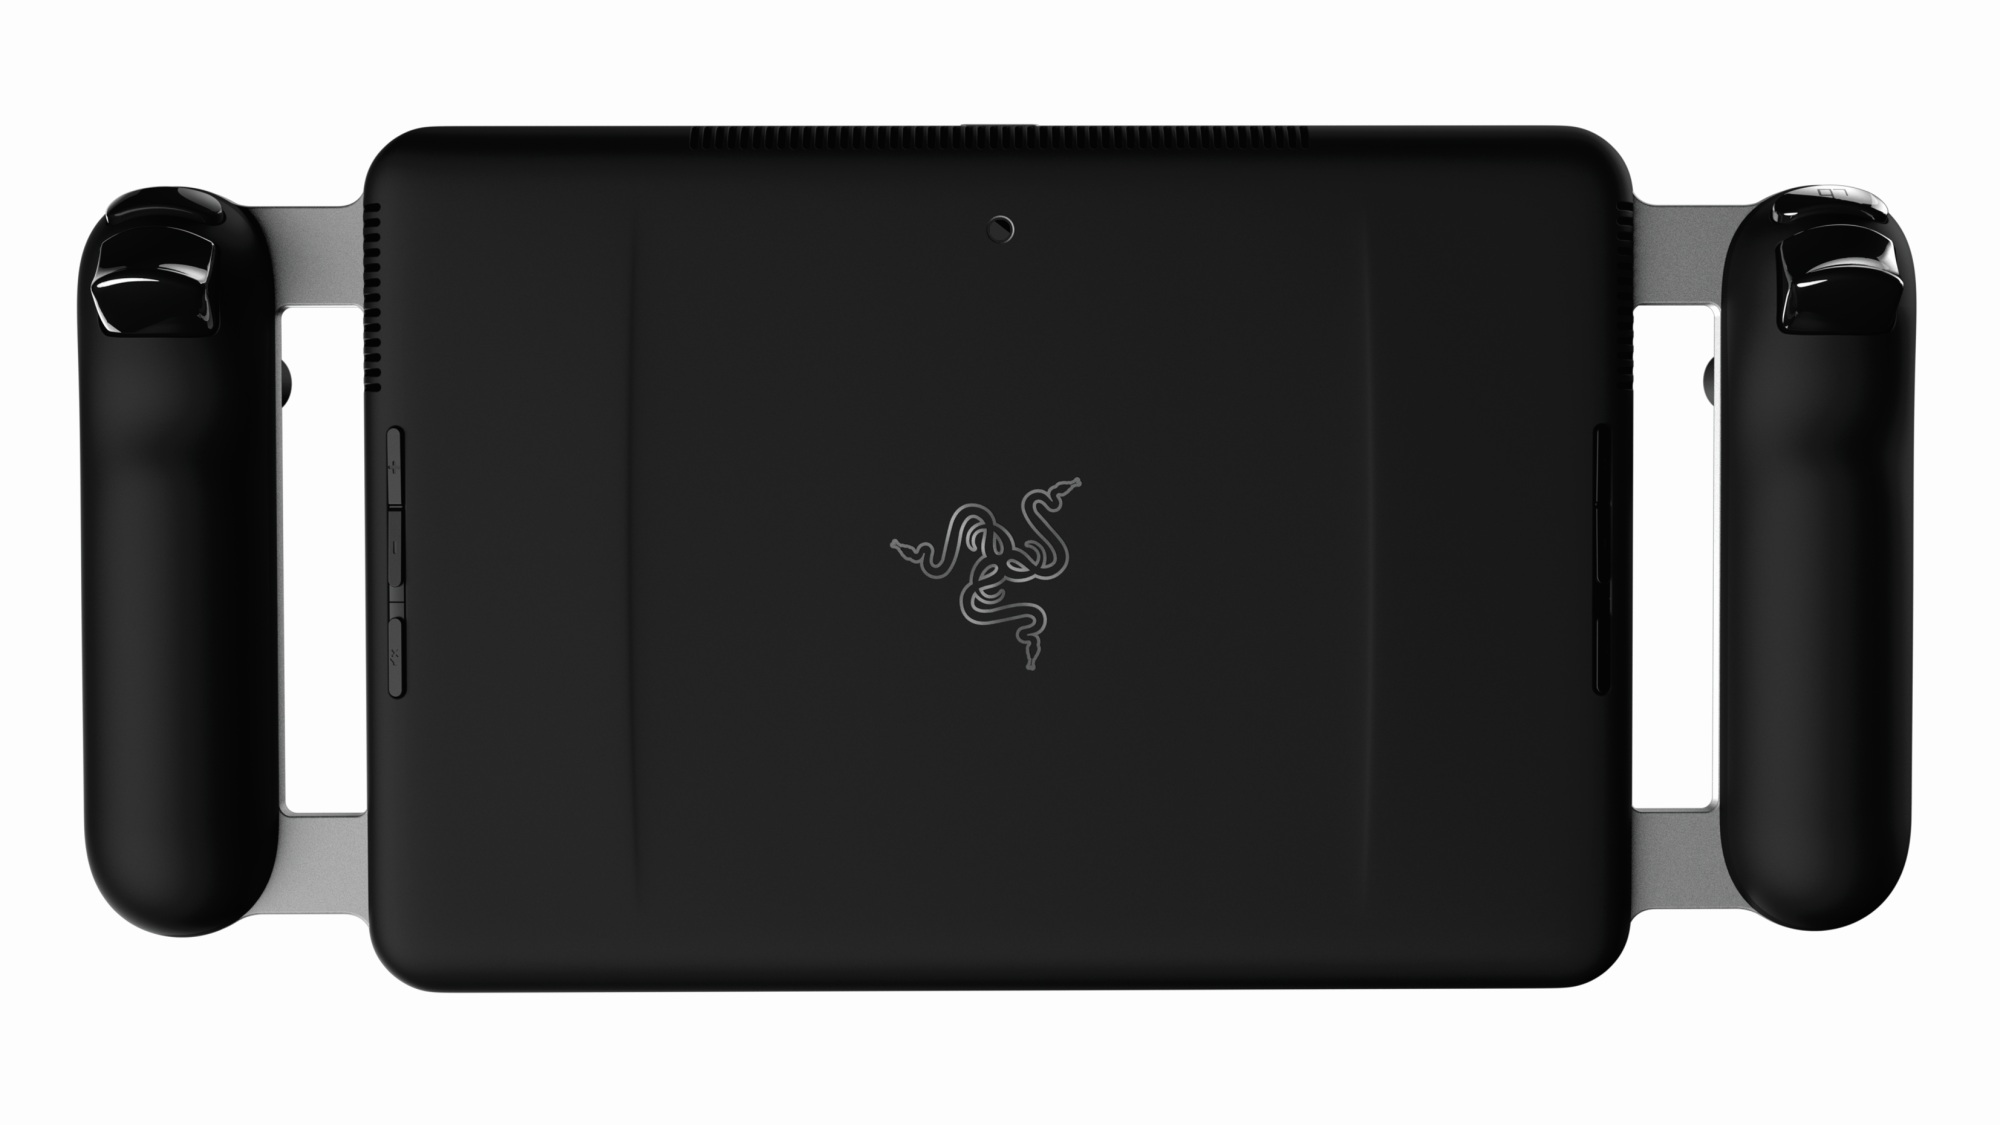 Project Fiona: Razer stellt High-End-Gaming-Tablet vor - Project Fiona